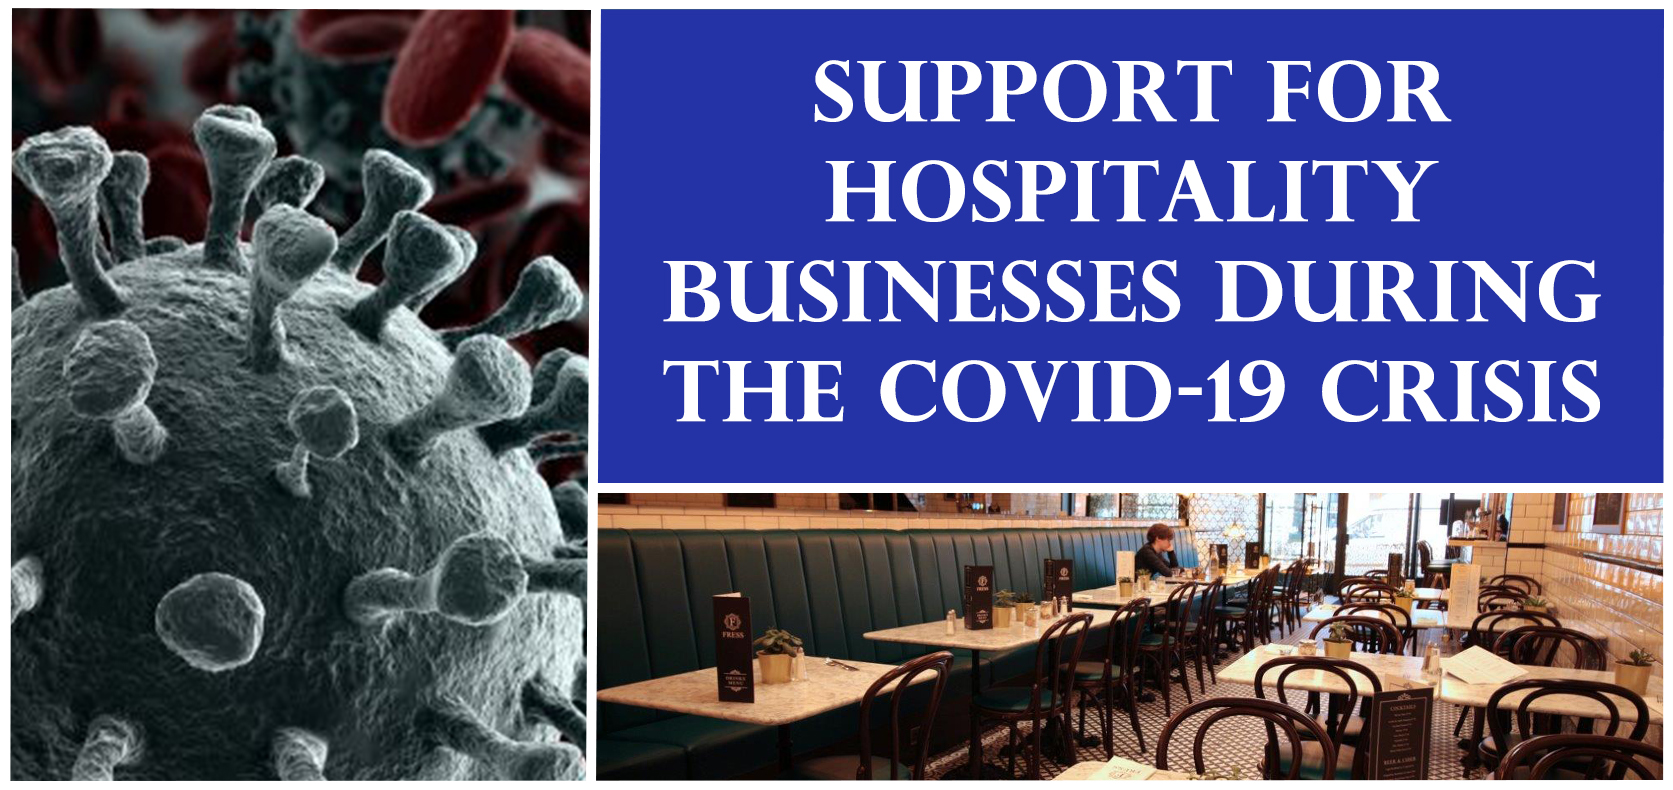 COVID-19 Hospitality Business support